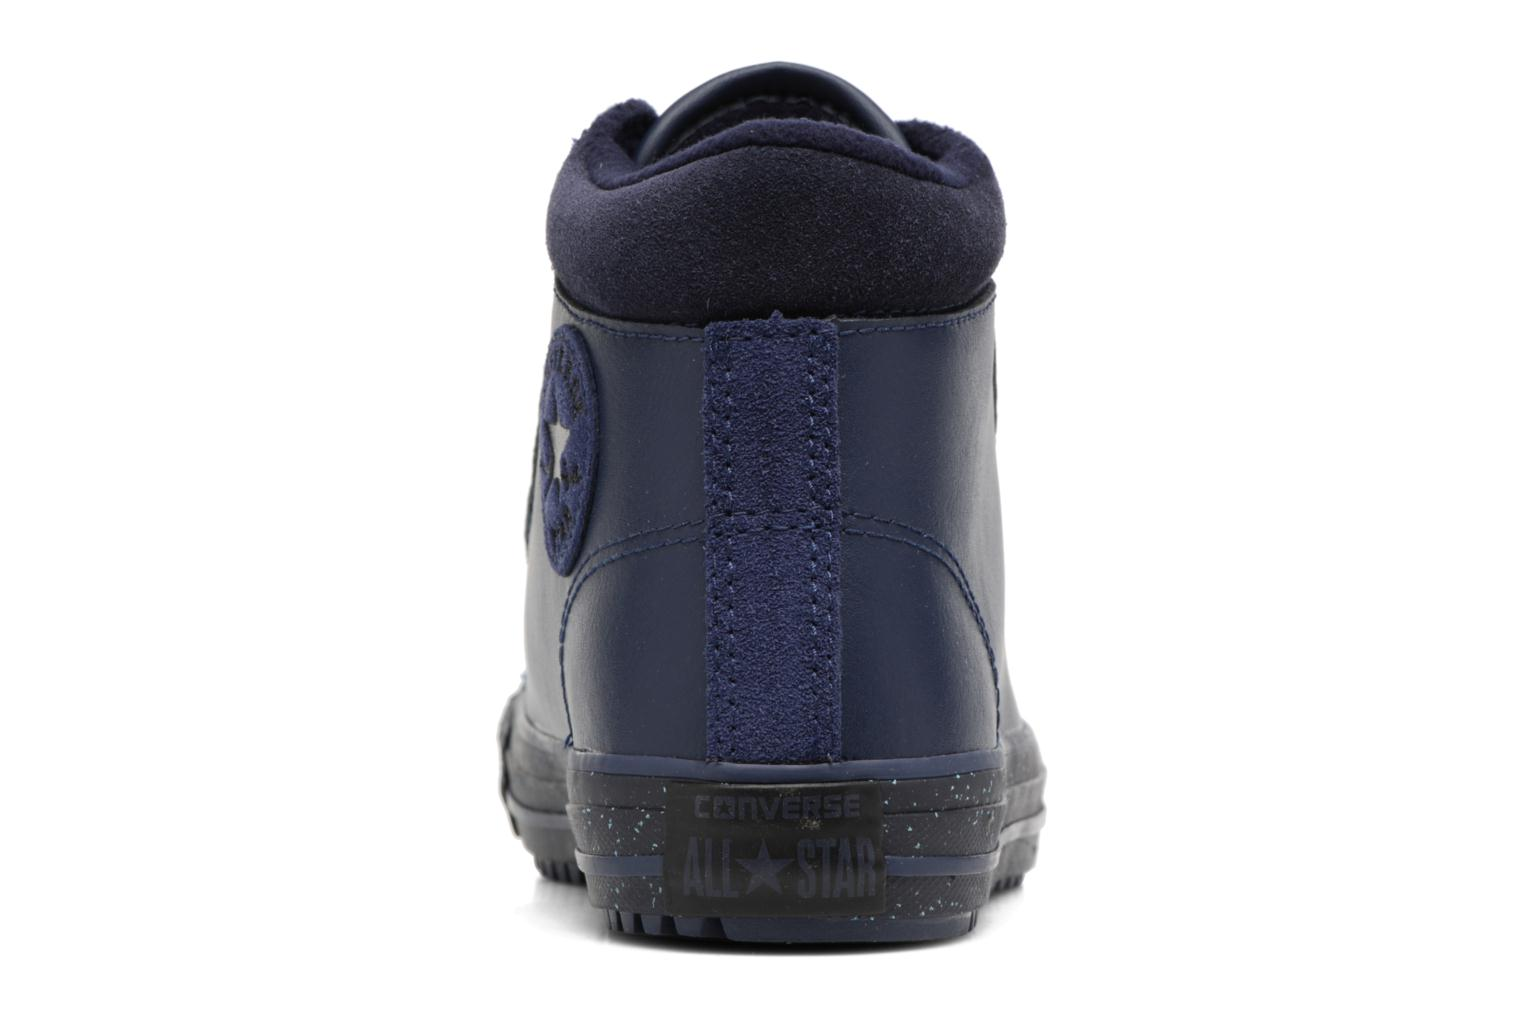 Midnight Navy/Inked/Black Converse Chuck Taylor All Star Converse Boot PC Leather Hi (Bleu)